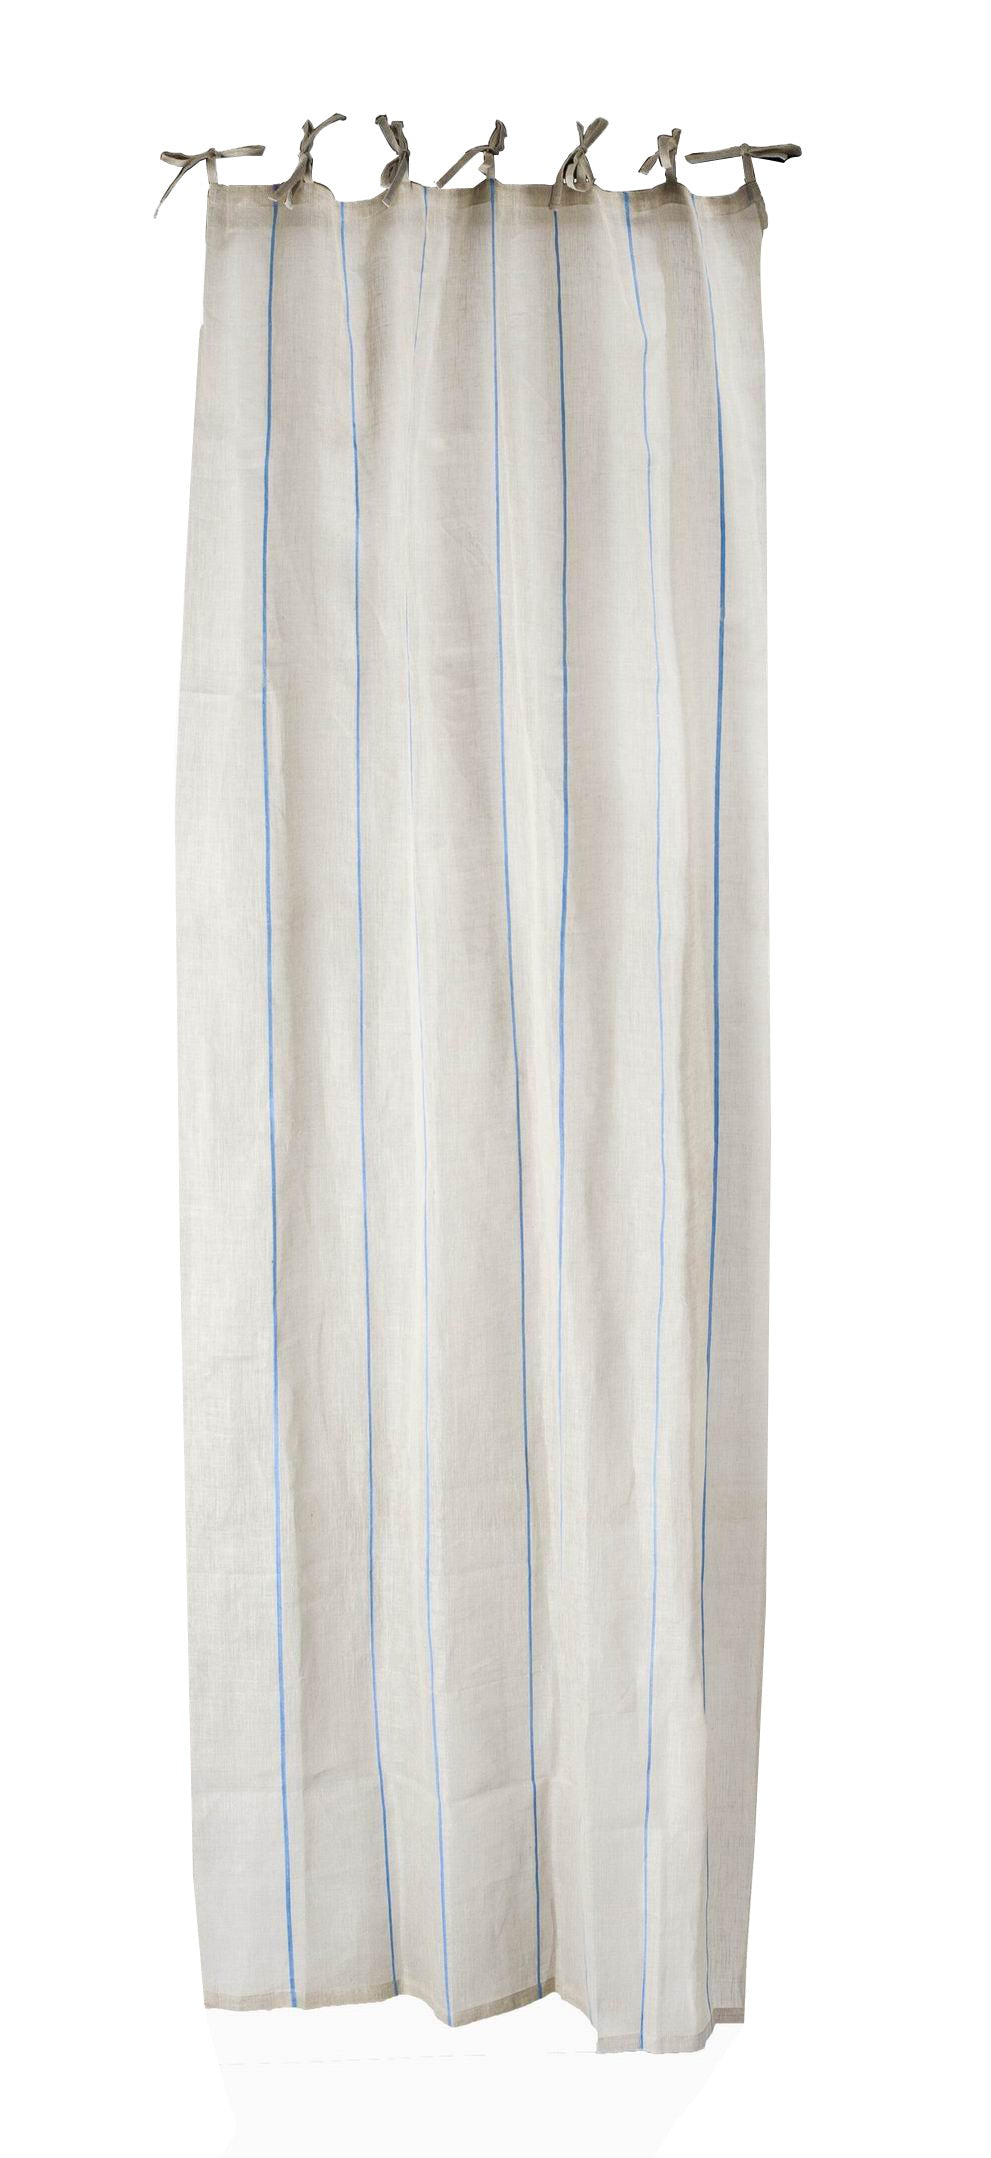 Thin Vertical Indigo Striped Linen Curtain